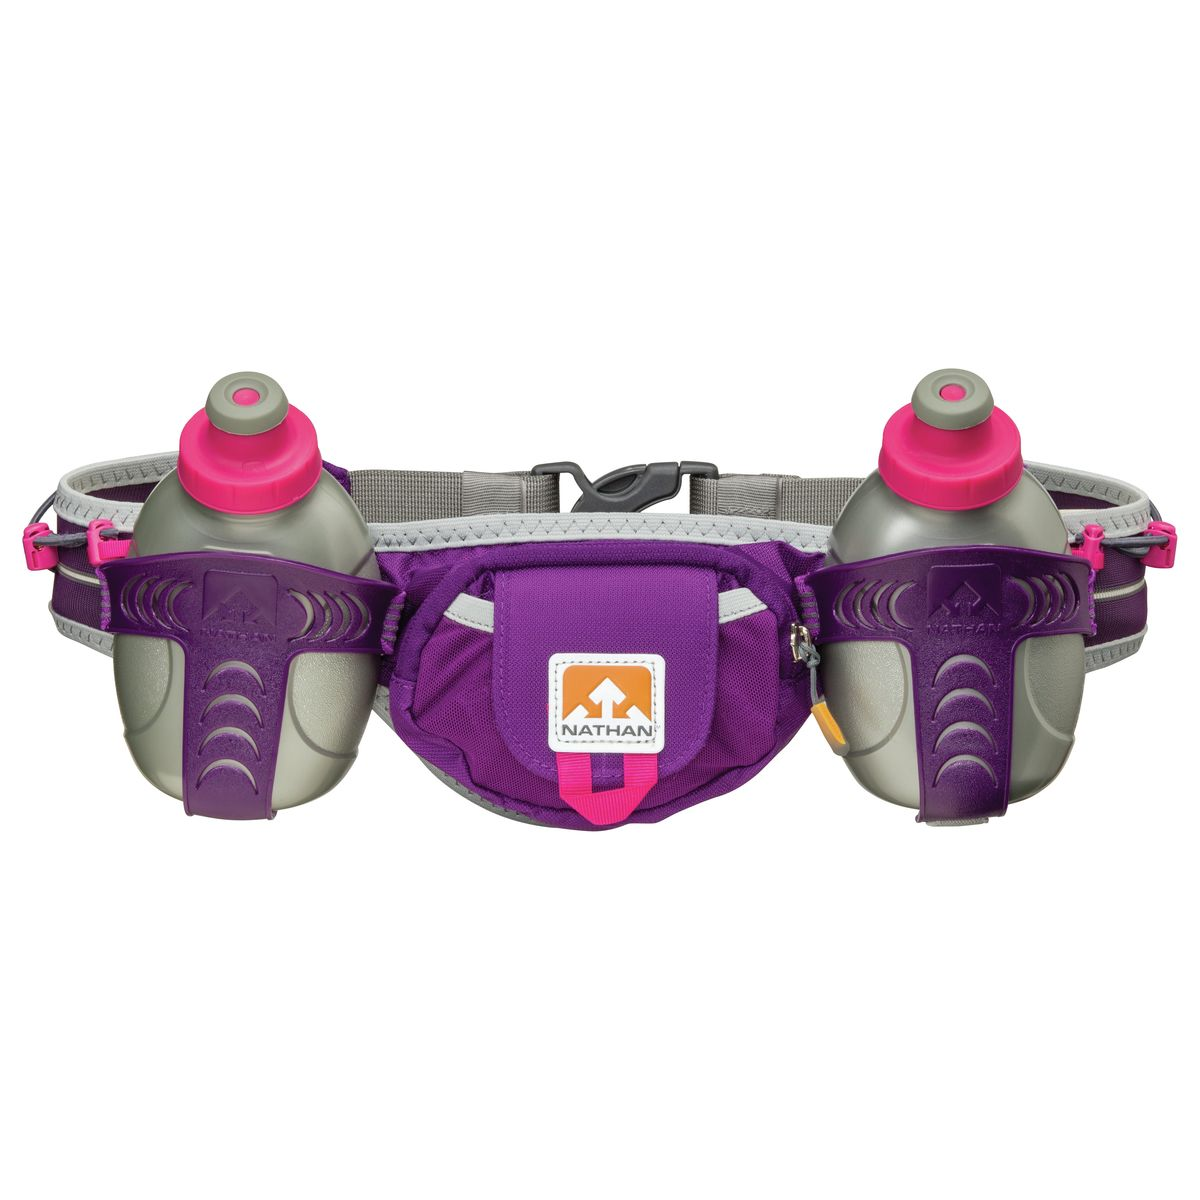 Nathan Trail Mix Hydration Belt